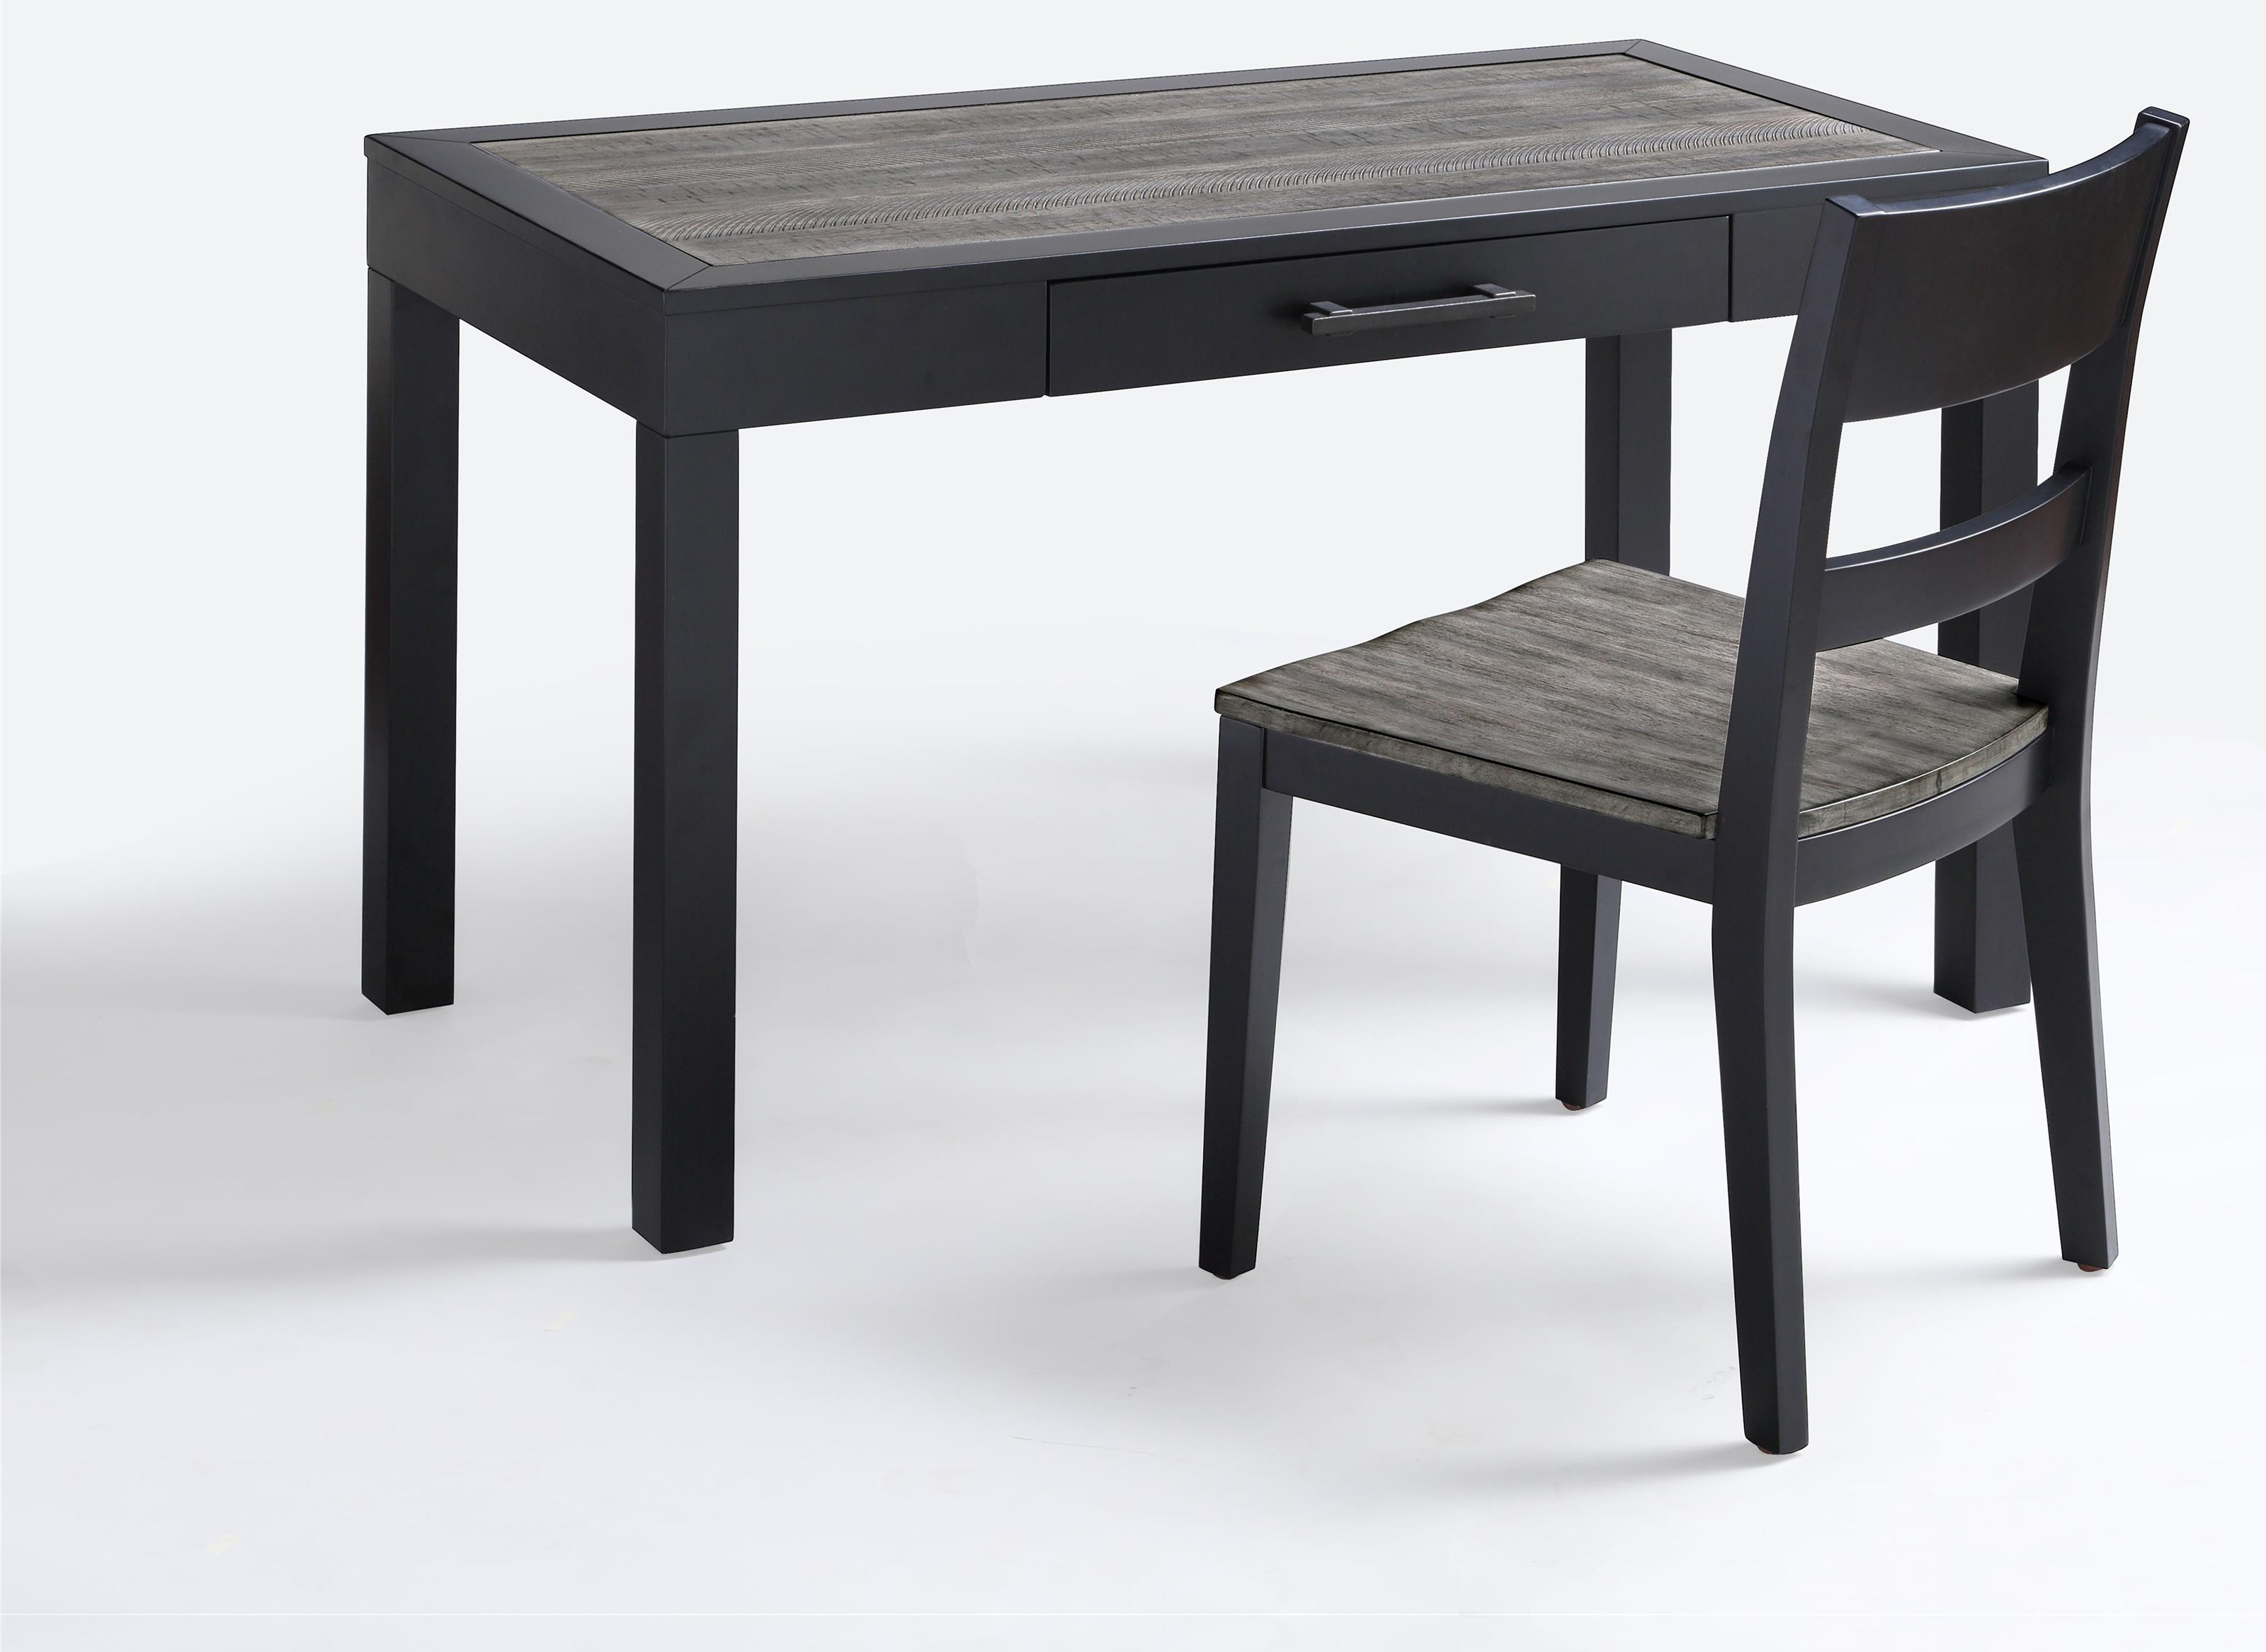 Daughtrey DESK CHAIR by Austin Group at Standard Furniture